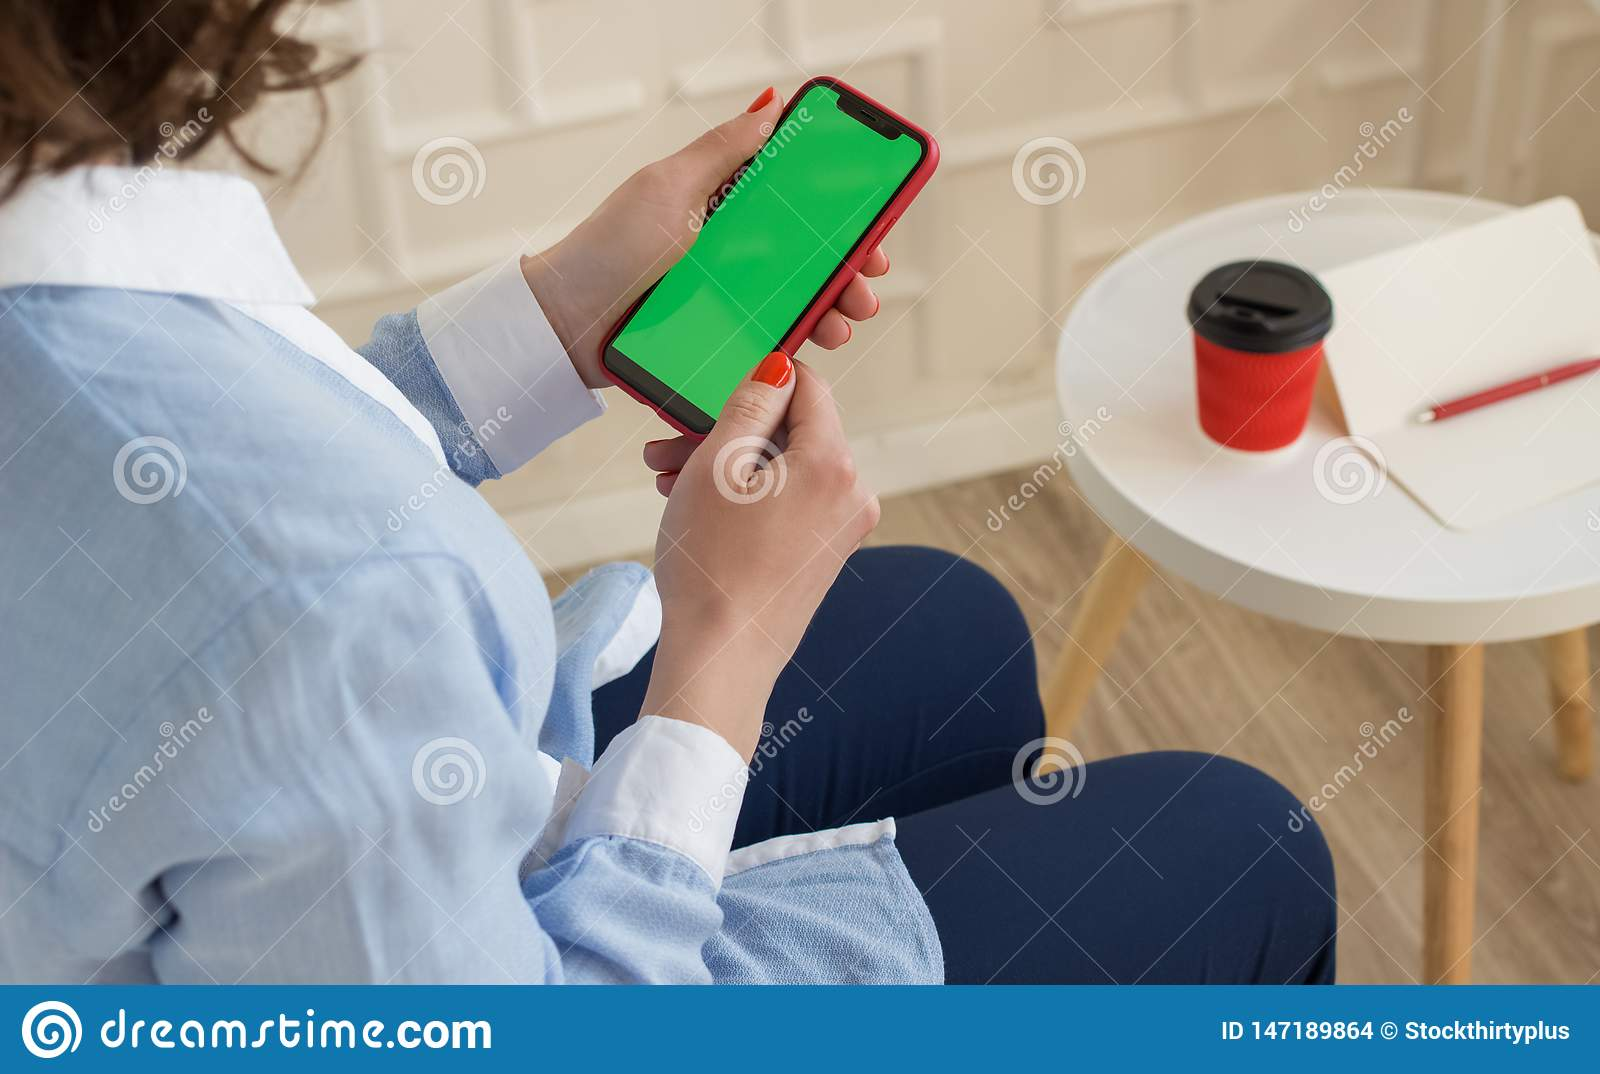 Mockup image: girl in in blue shirt and trousers holding black mobile phone with chroma key screen